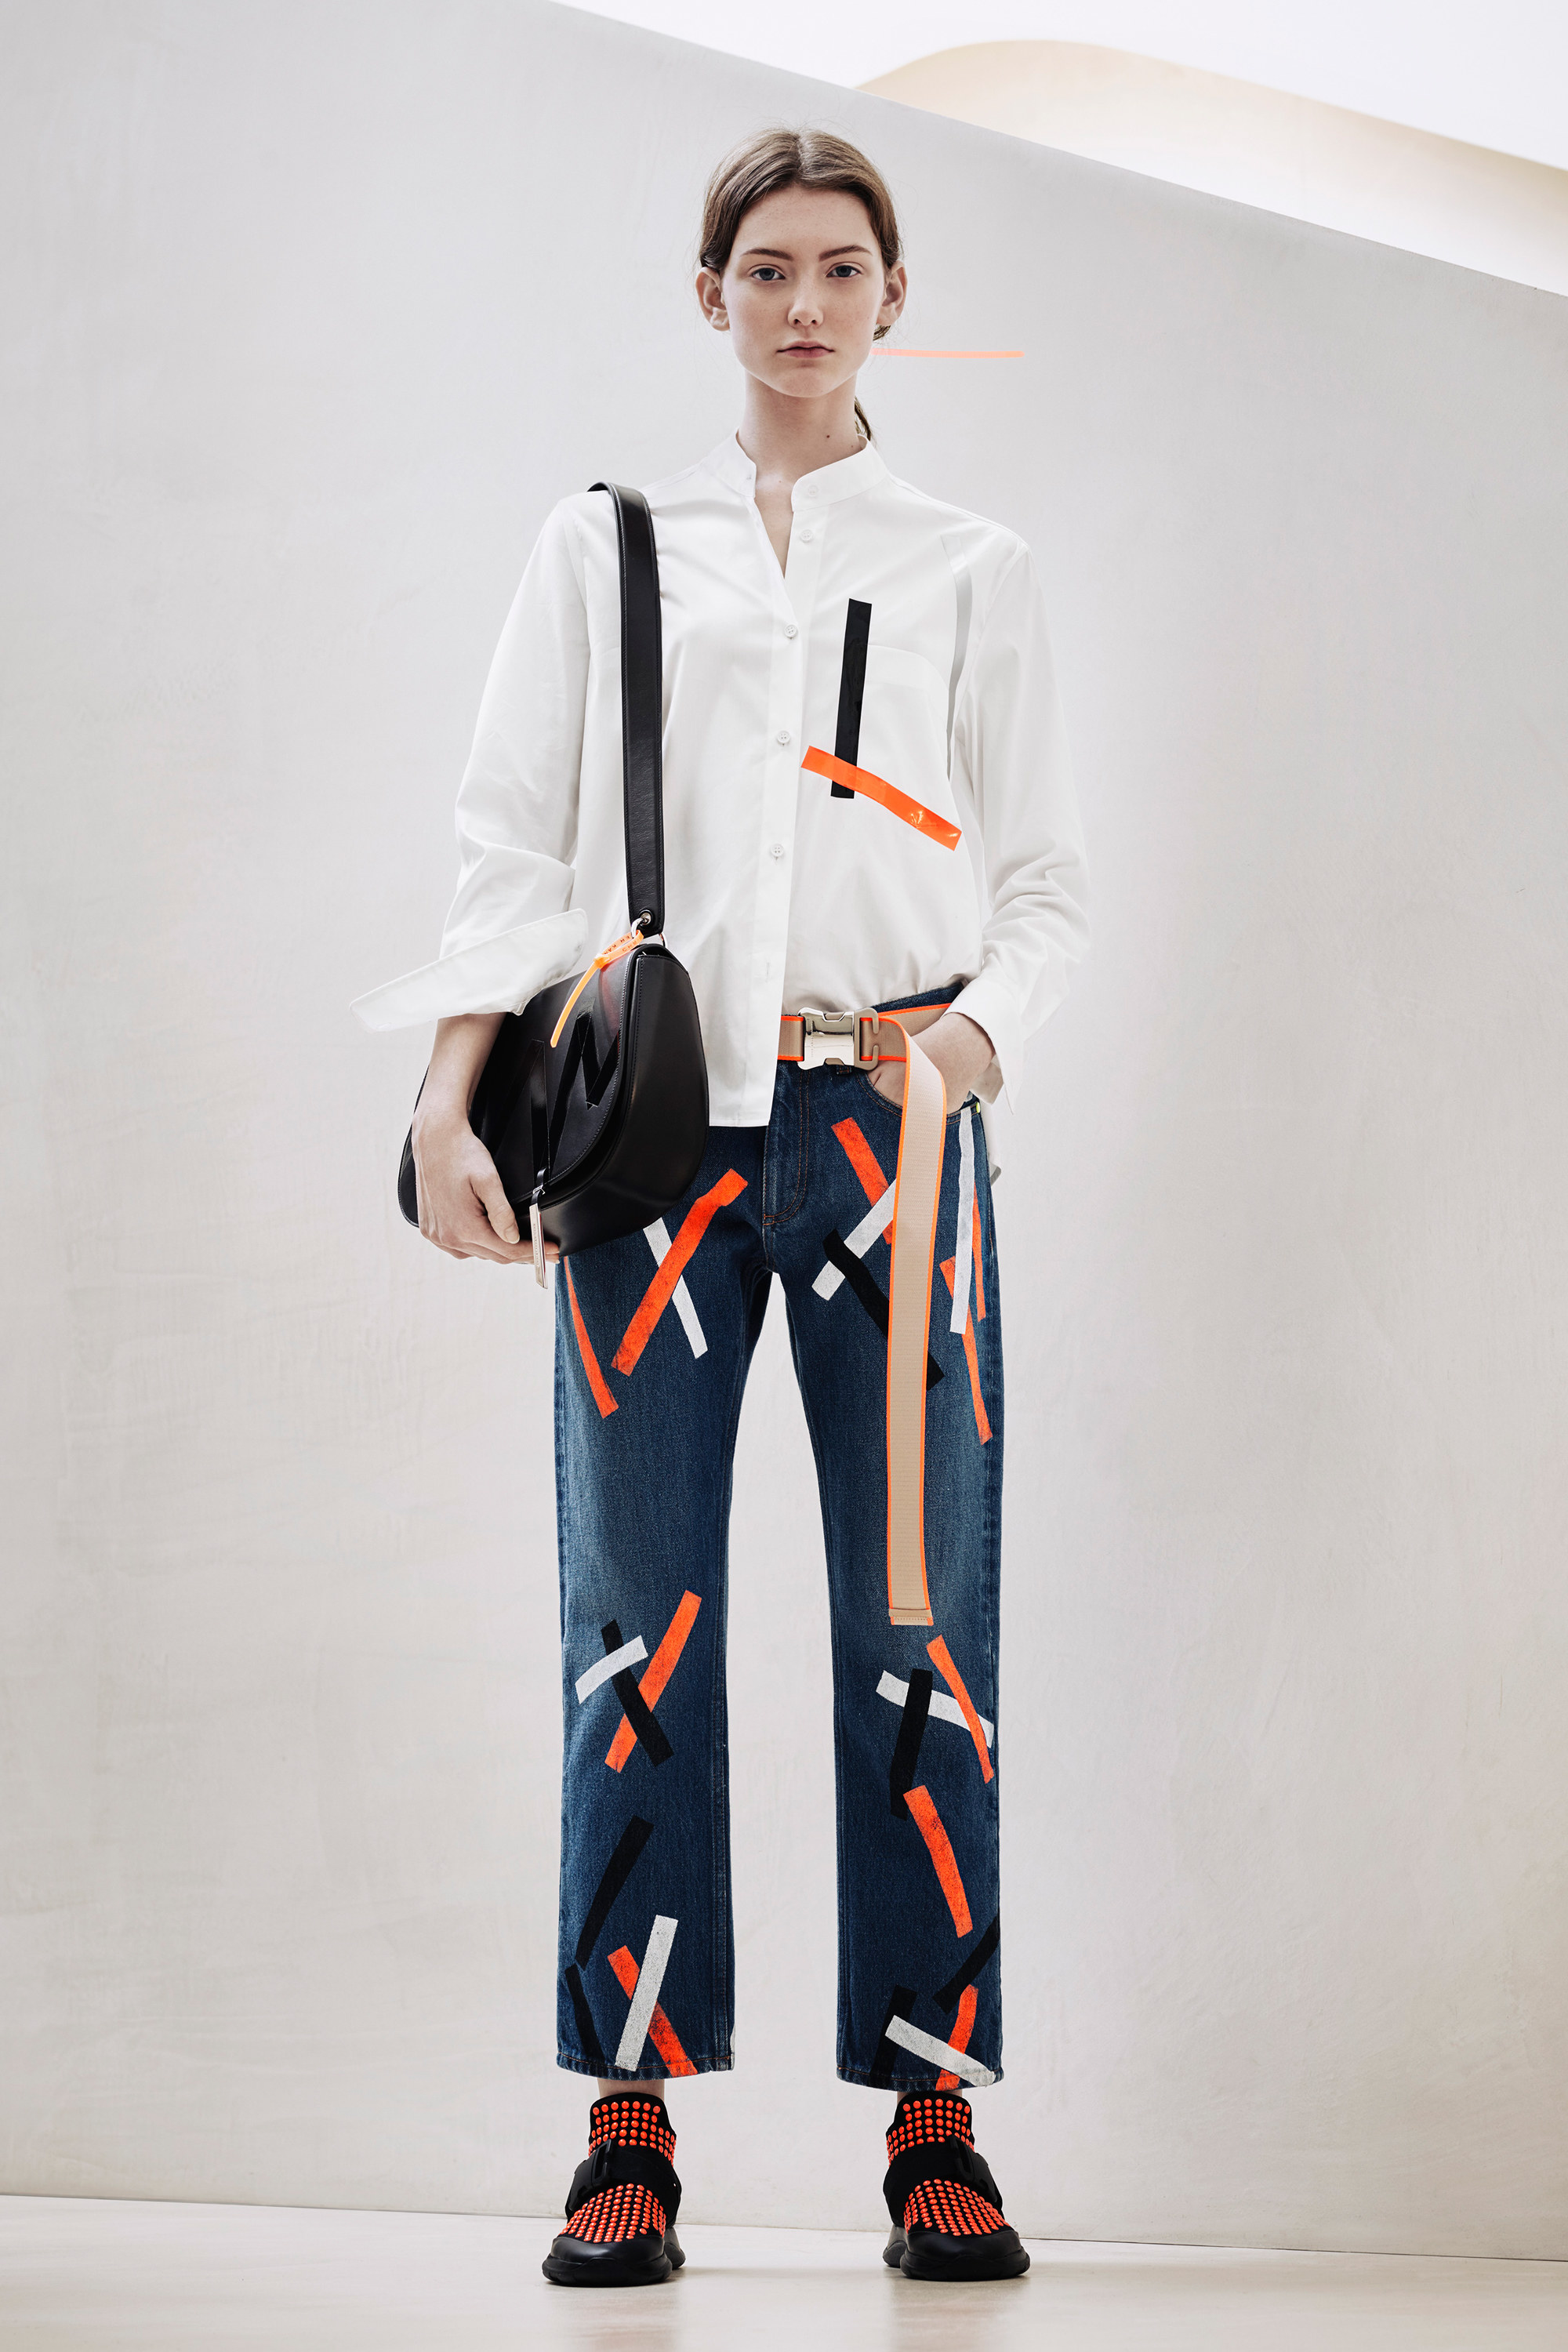 christopher-kane-pre-fall-2016-lookbook-08.jpg